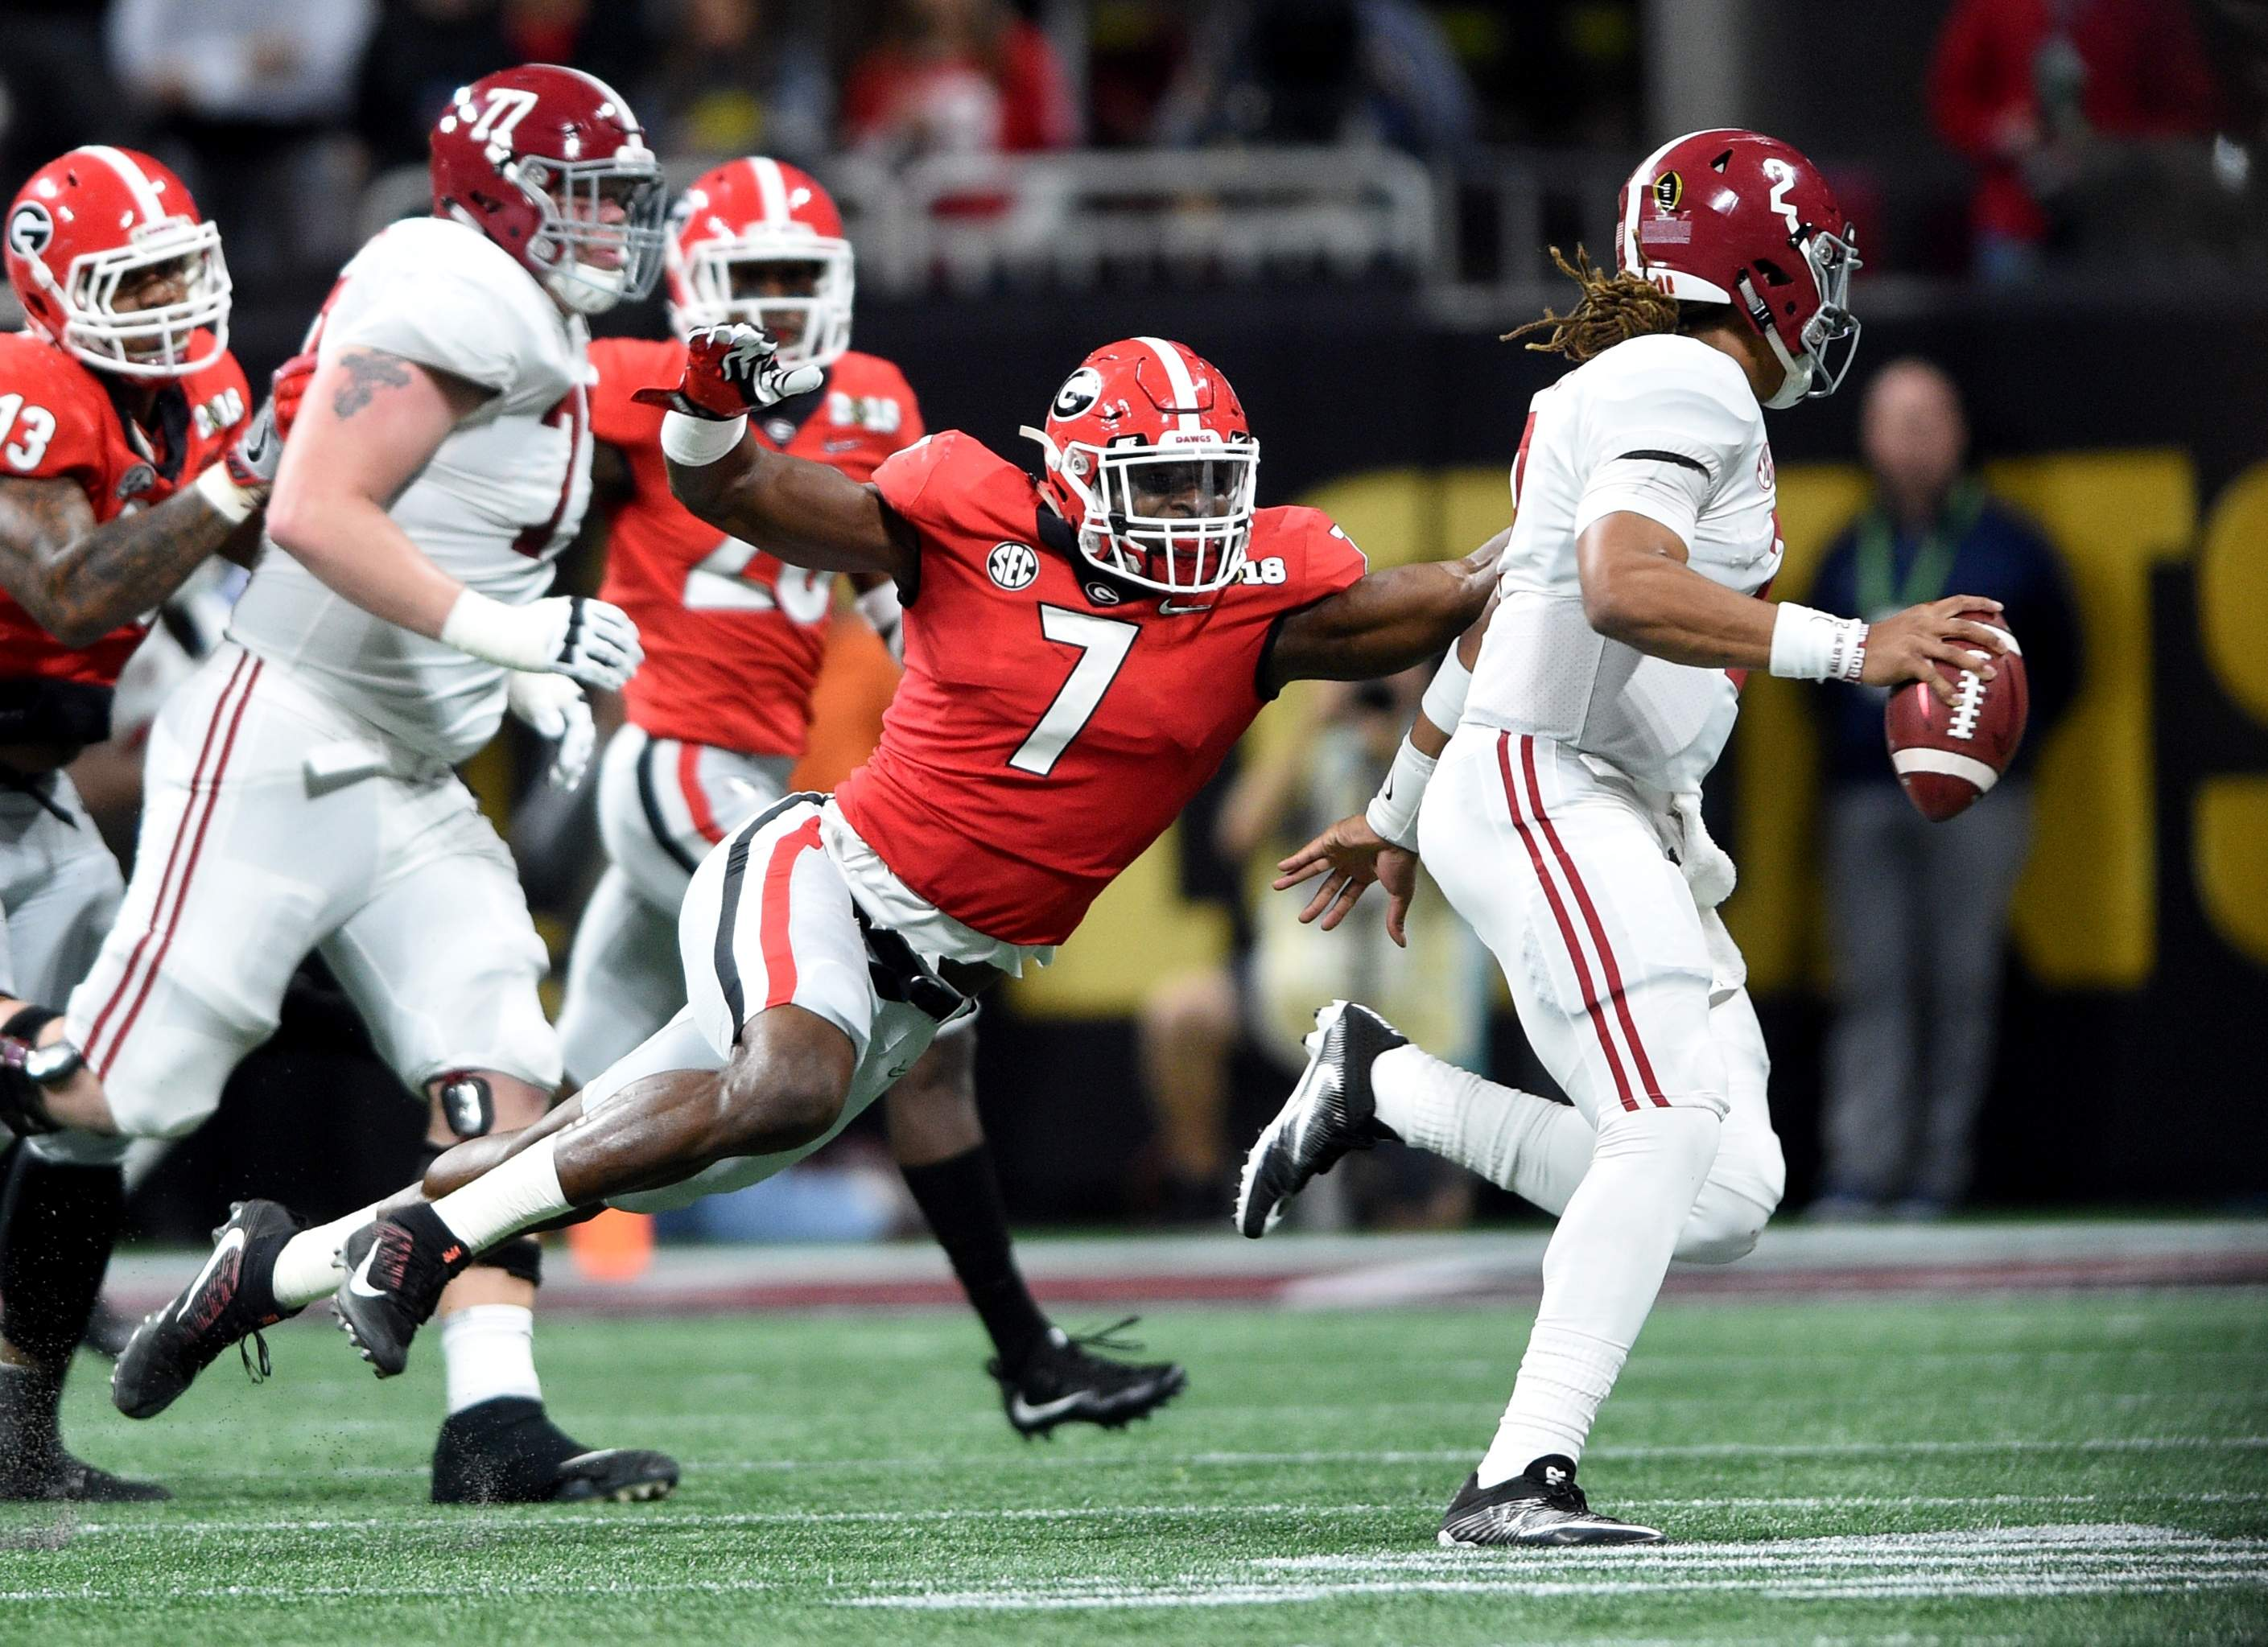 Georgia's Lorenzo Carter, left, stretches to get ahold of Alabama quarterback Jalen Hurts during the 2018 College Football Playoff National Championship at Mercedes-Benz Stadium in Atlanta, Ga., Monday evening January 8, 2018. MICHAEL HOLAHAN/AUGUSTA CHRONICLE